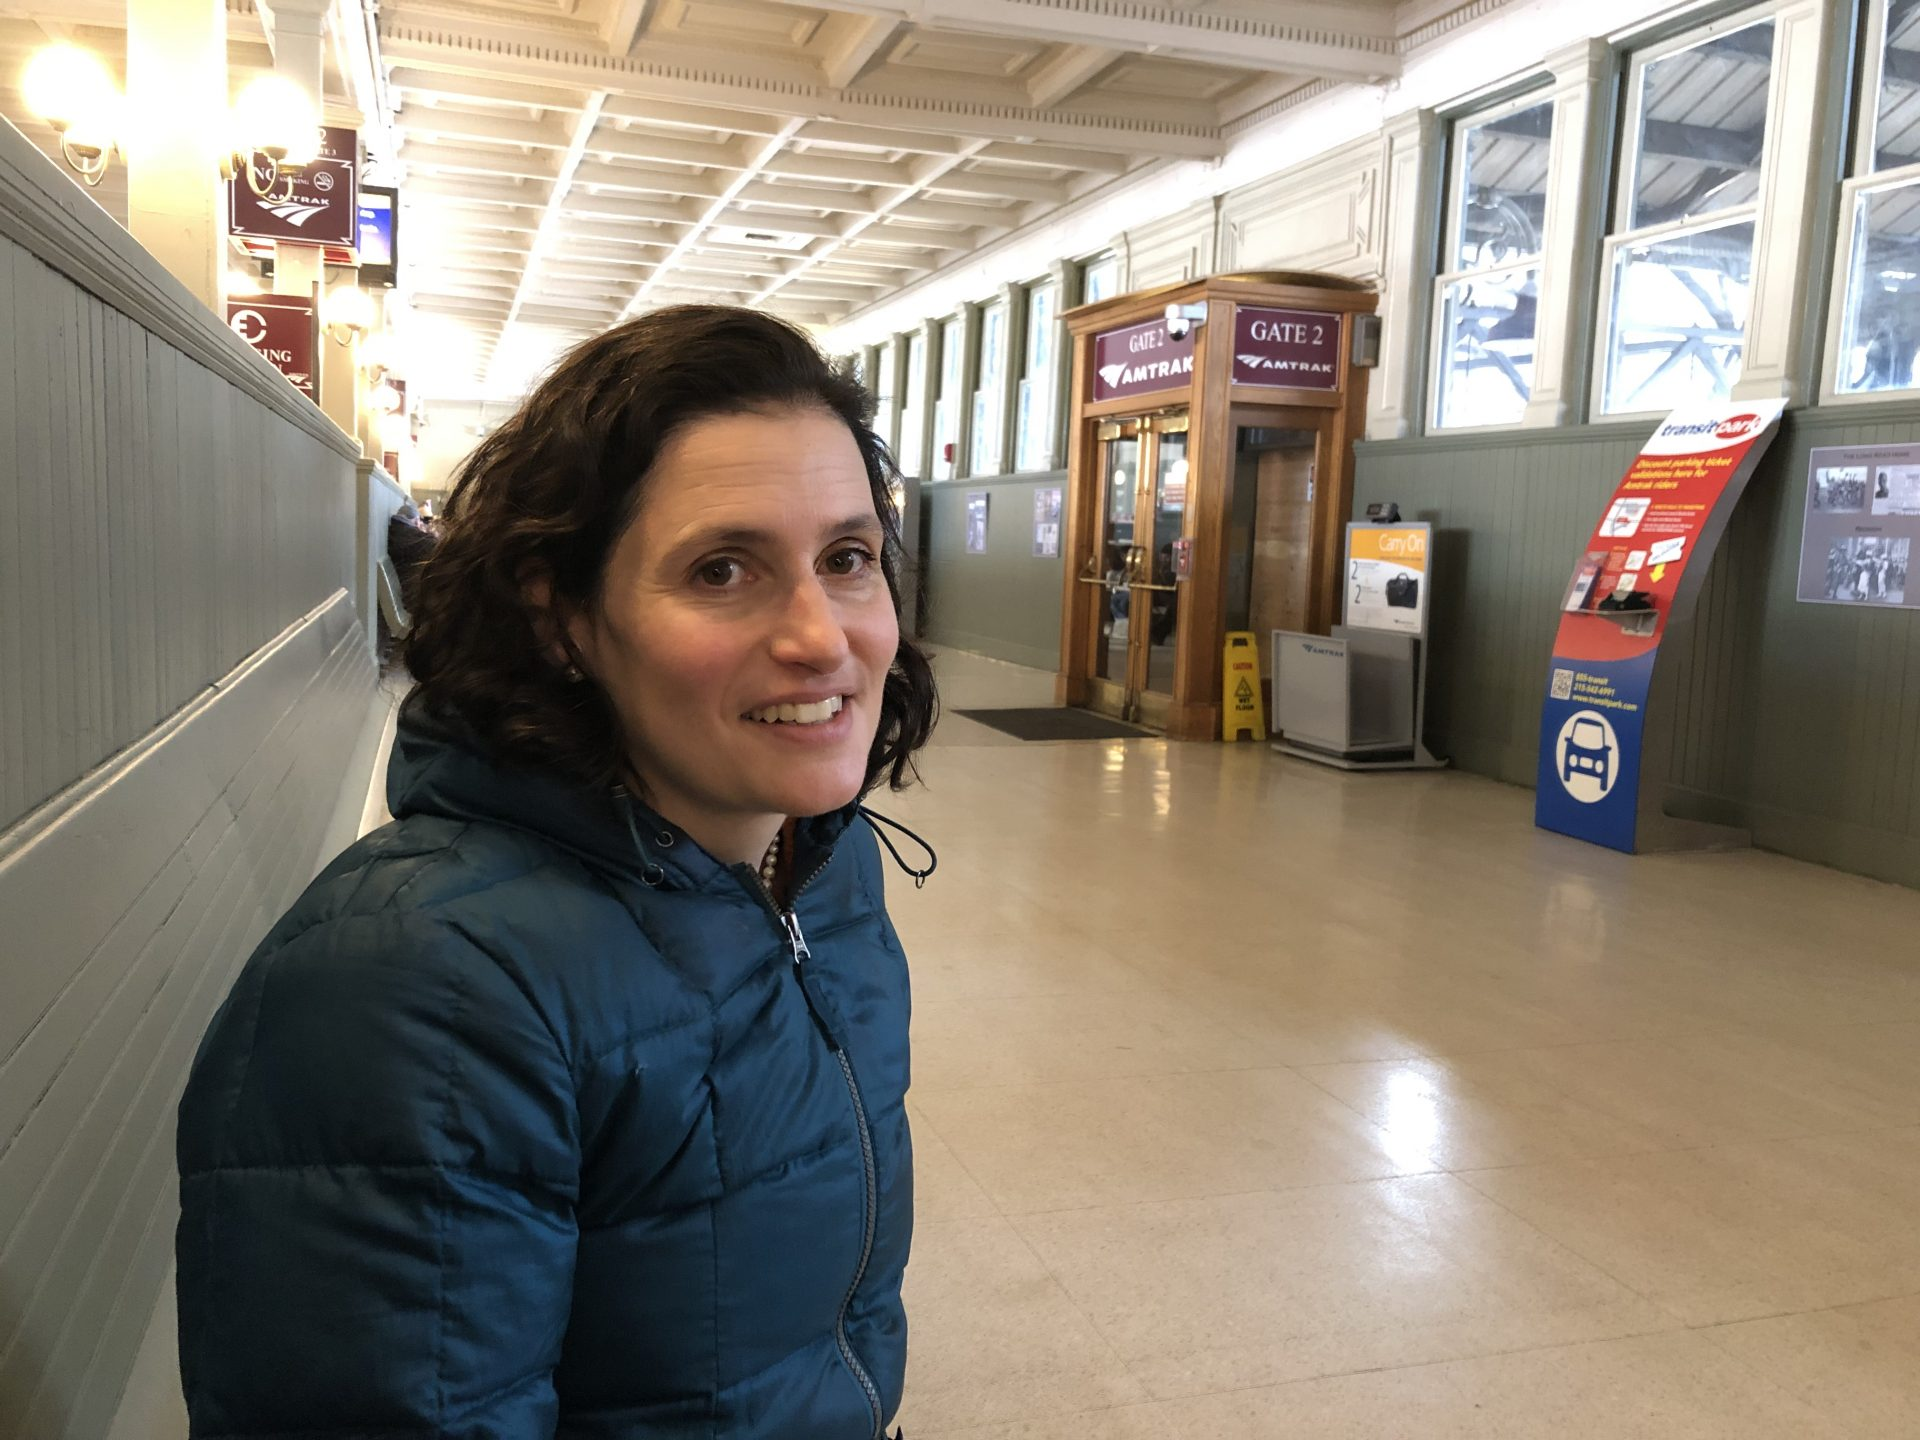 Claire Shubik-Richards, executive director of the Pennsylvania Prison Society, is seen on Wednesday, Feb. 26, 2019, at the Harrisburg Transportation Center. Her organization is based in Philadelphia but she was in the state capital for meetings.